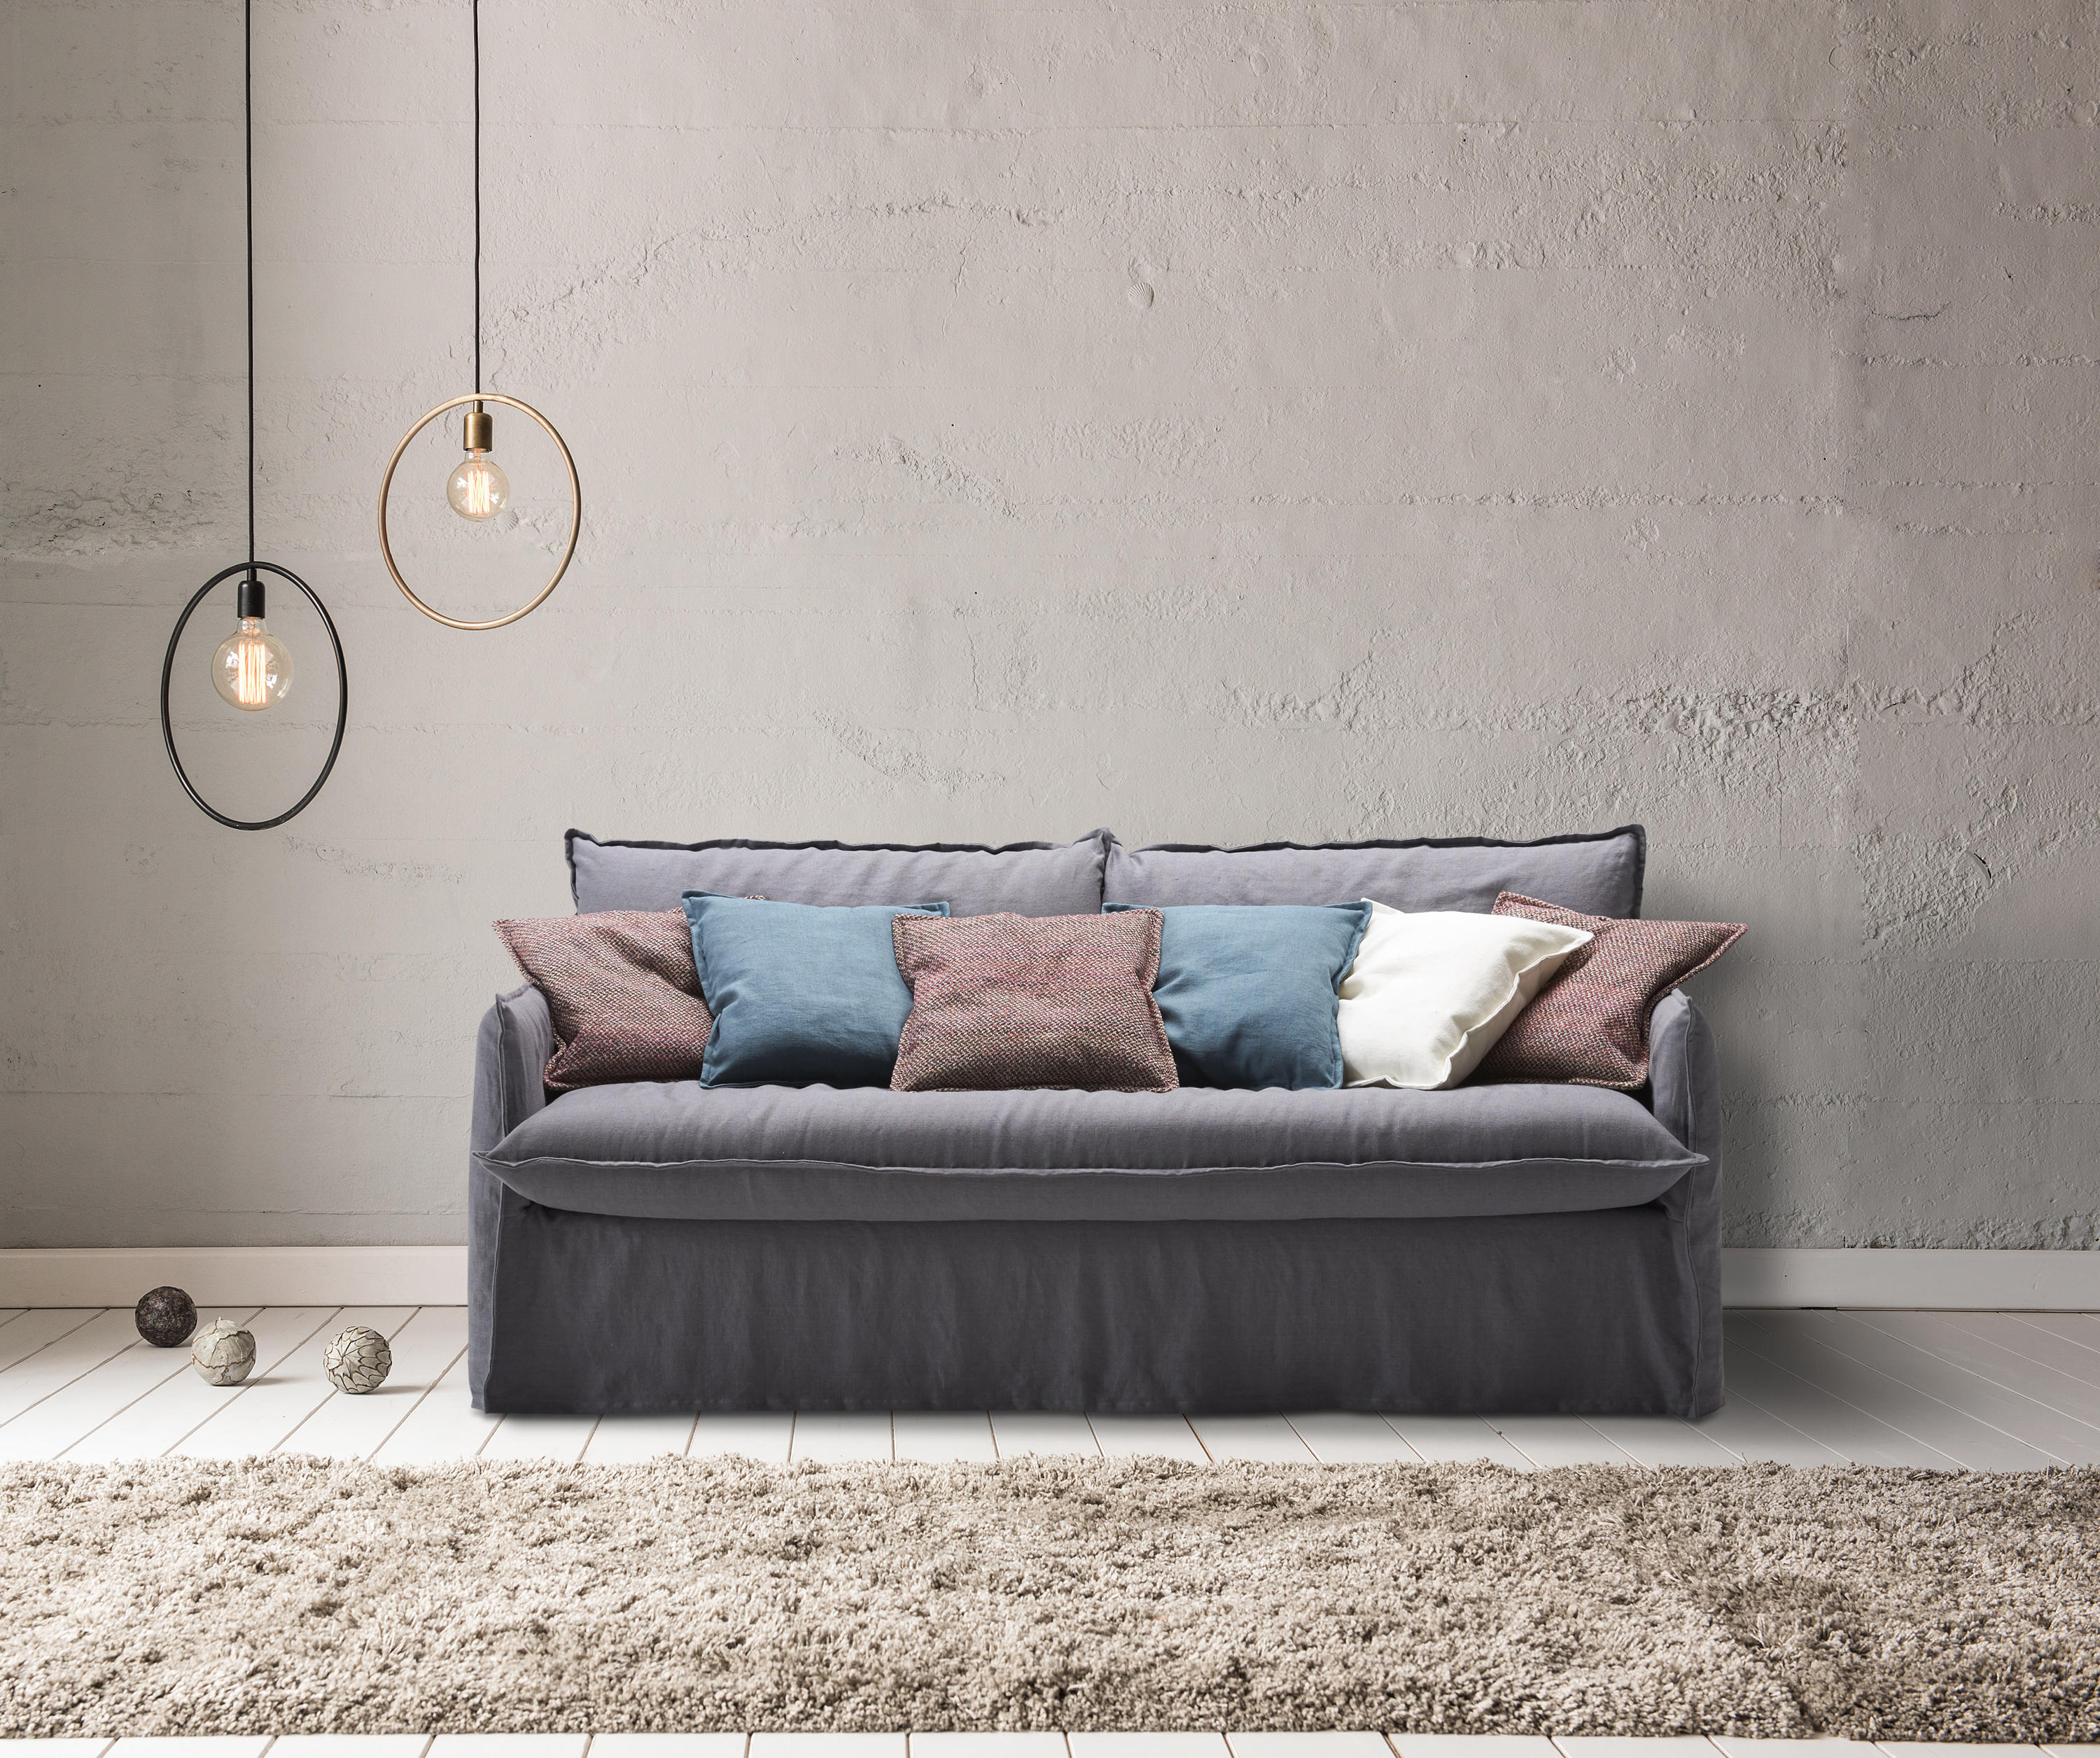 clarke sofa beds from milano bedding architonic. Black Bedroom Furniture Sets. Home Design Ideas